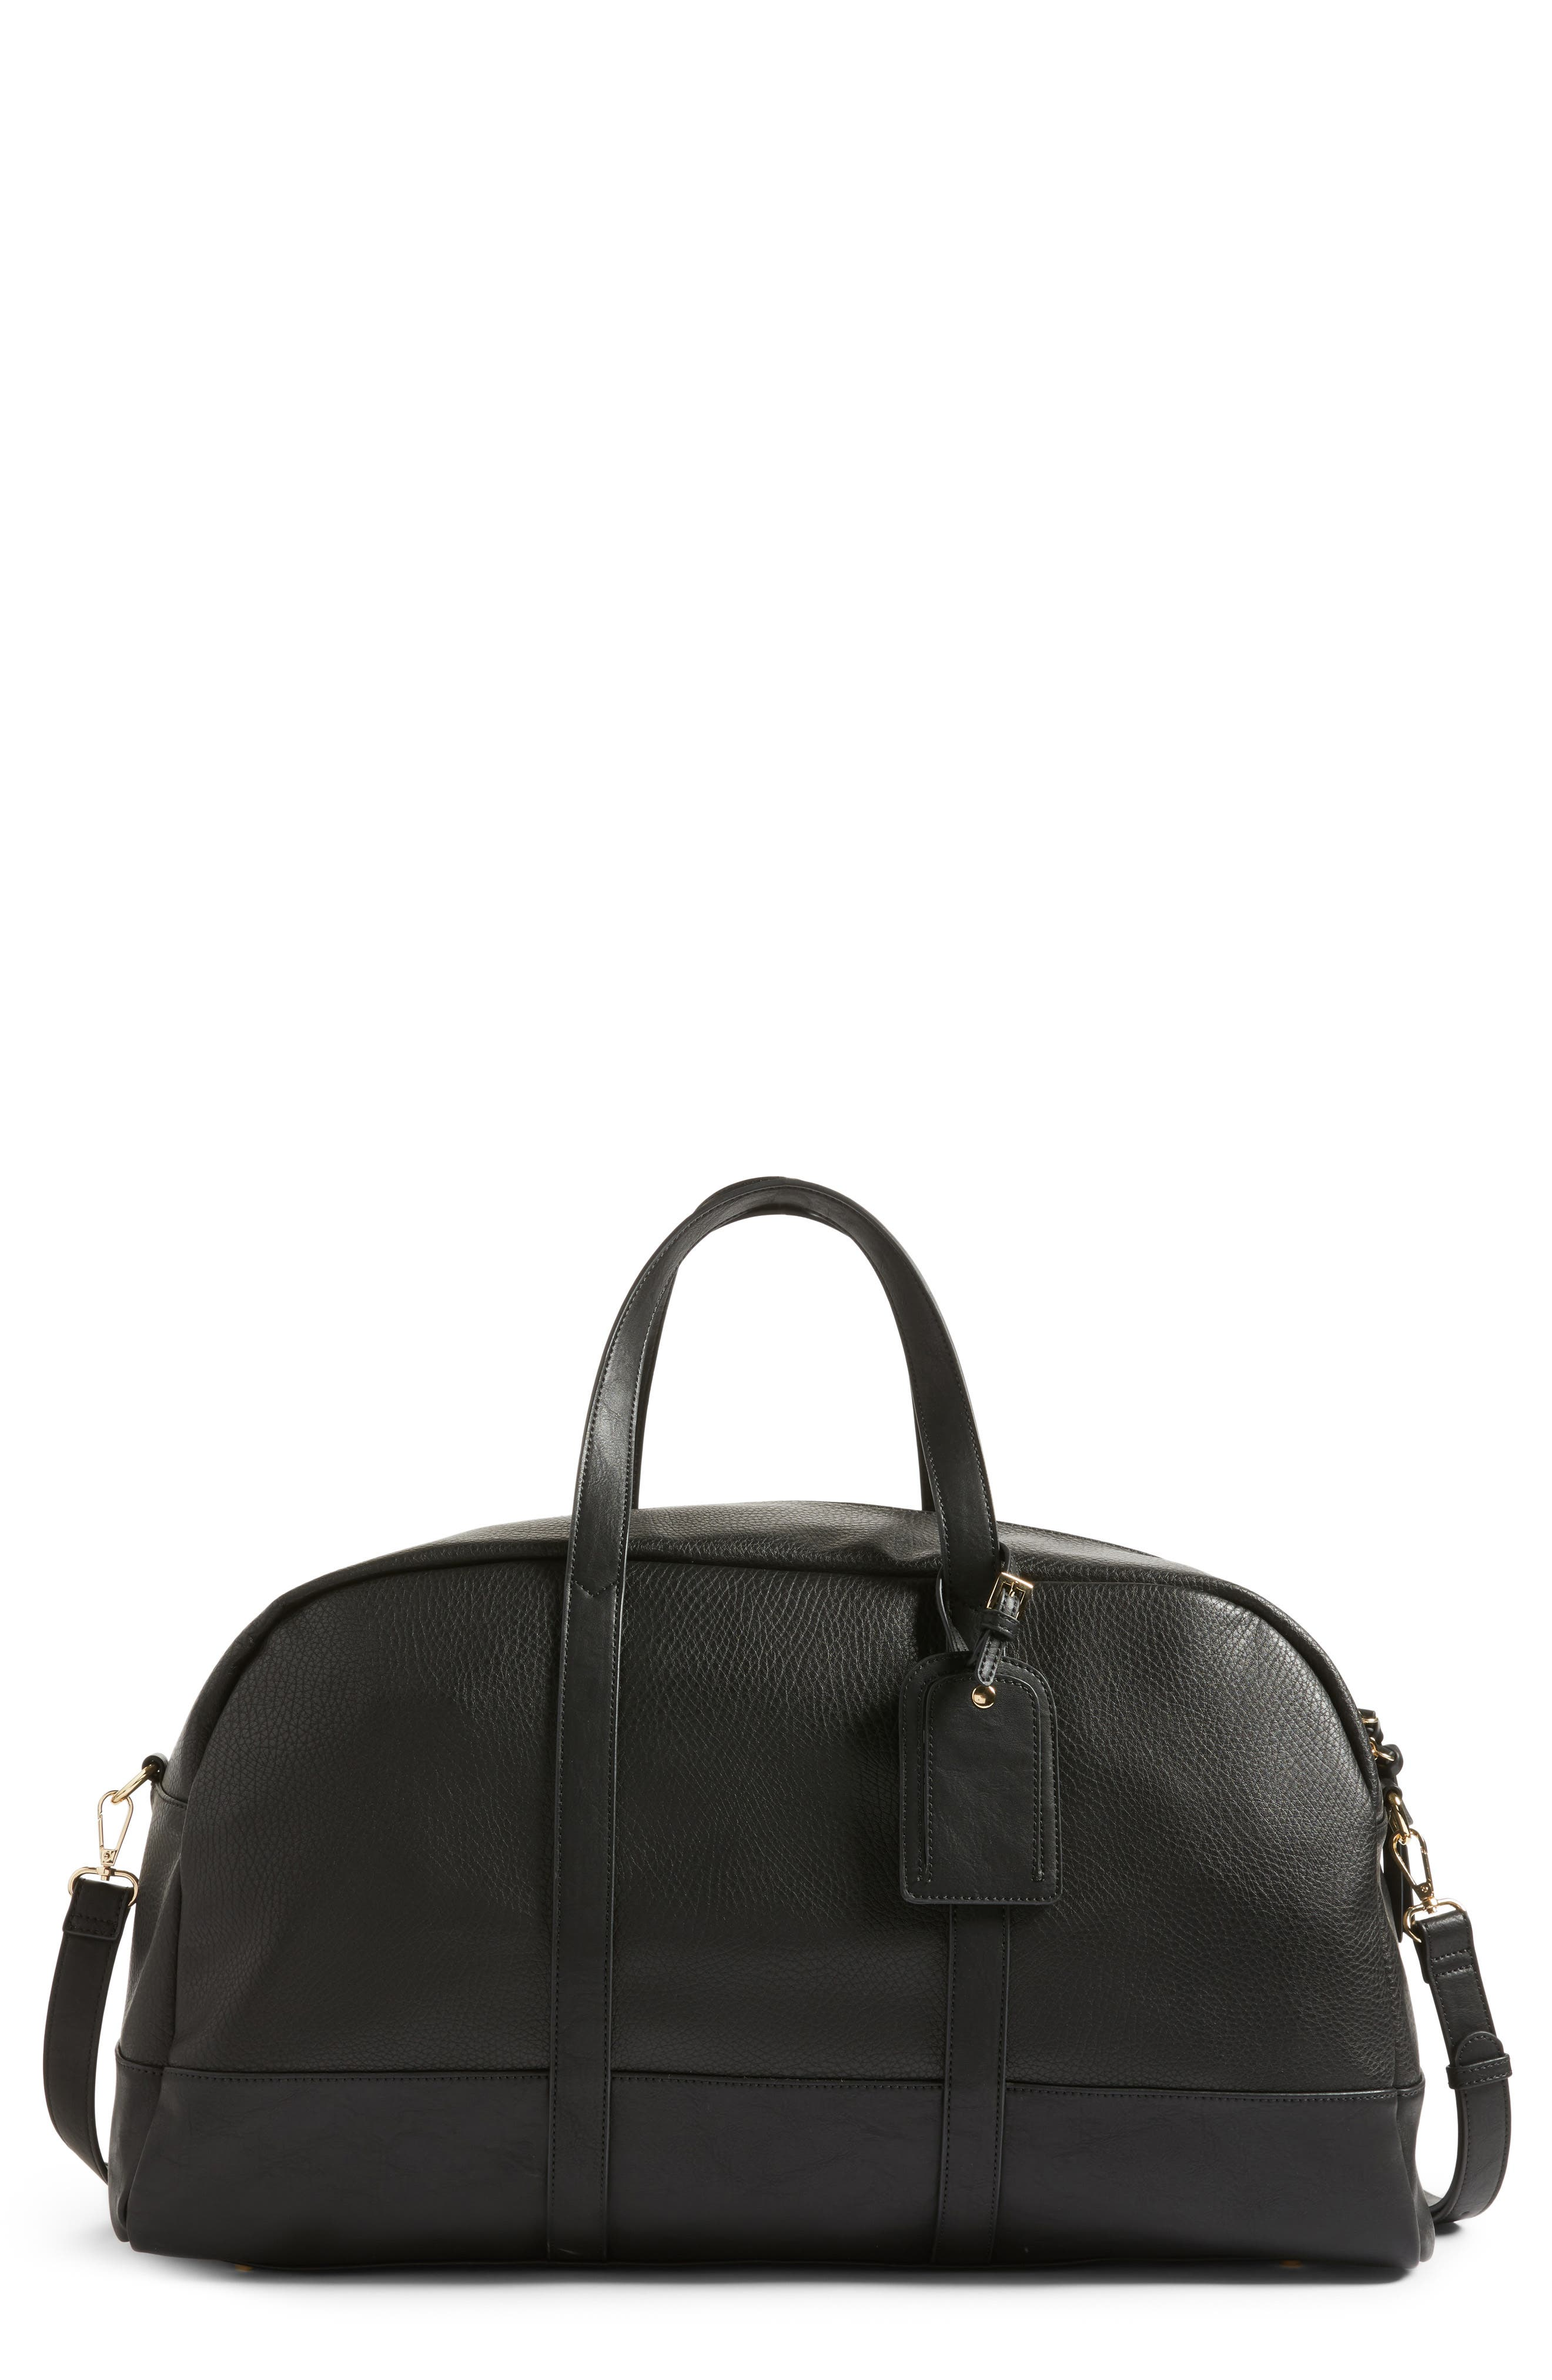 Sole Society Marant Faux Leather Duffle Bag